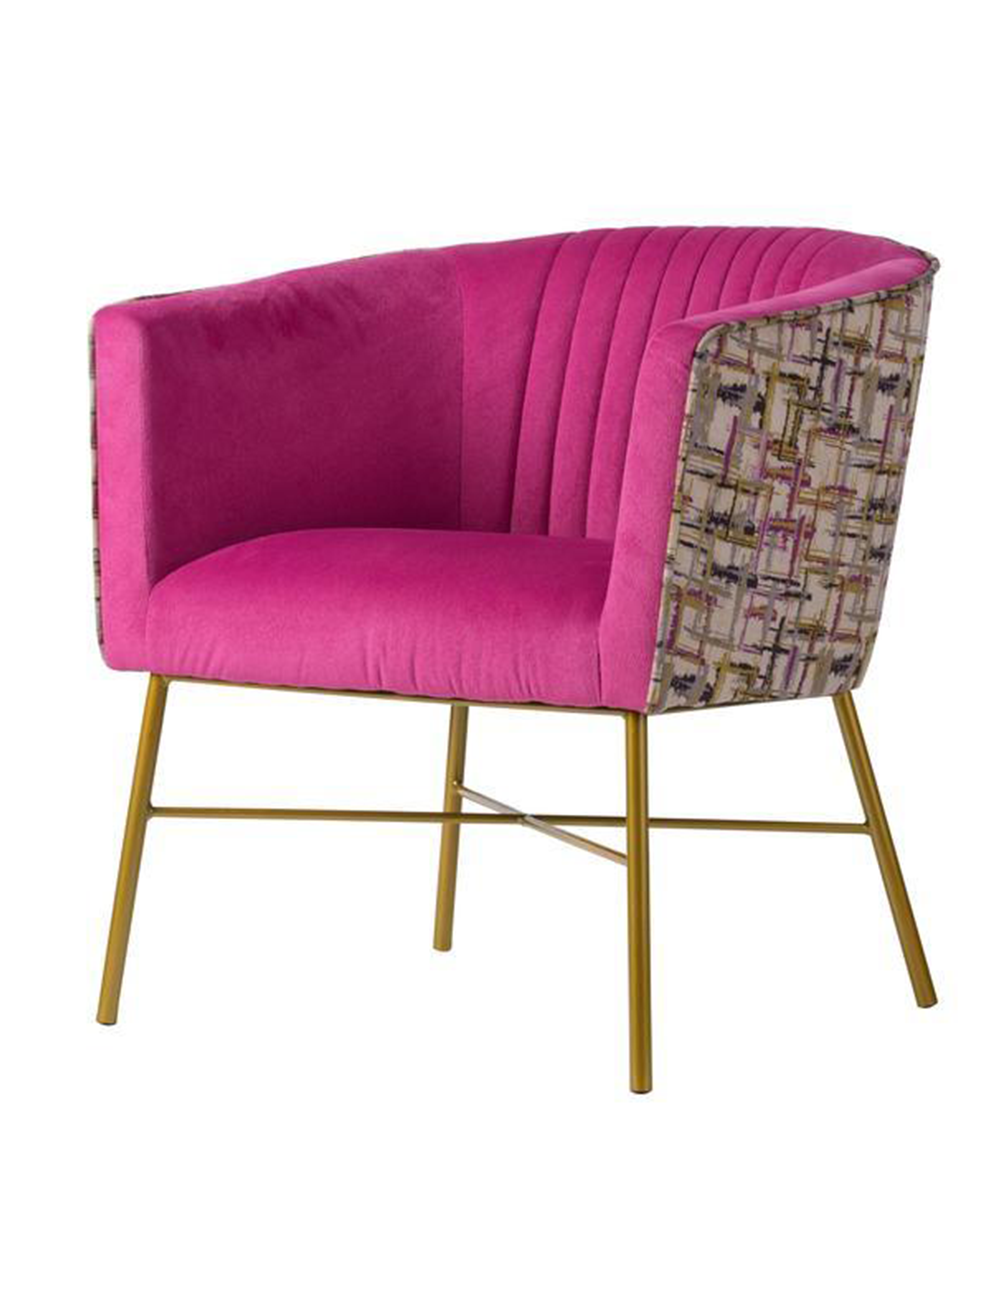 PINK VIBE ARMCHAIR - decorstore